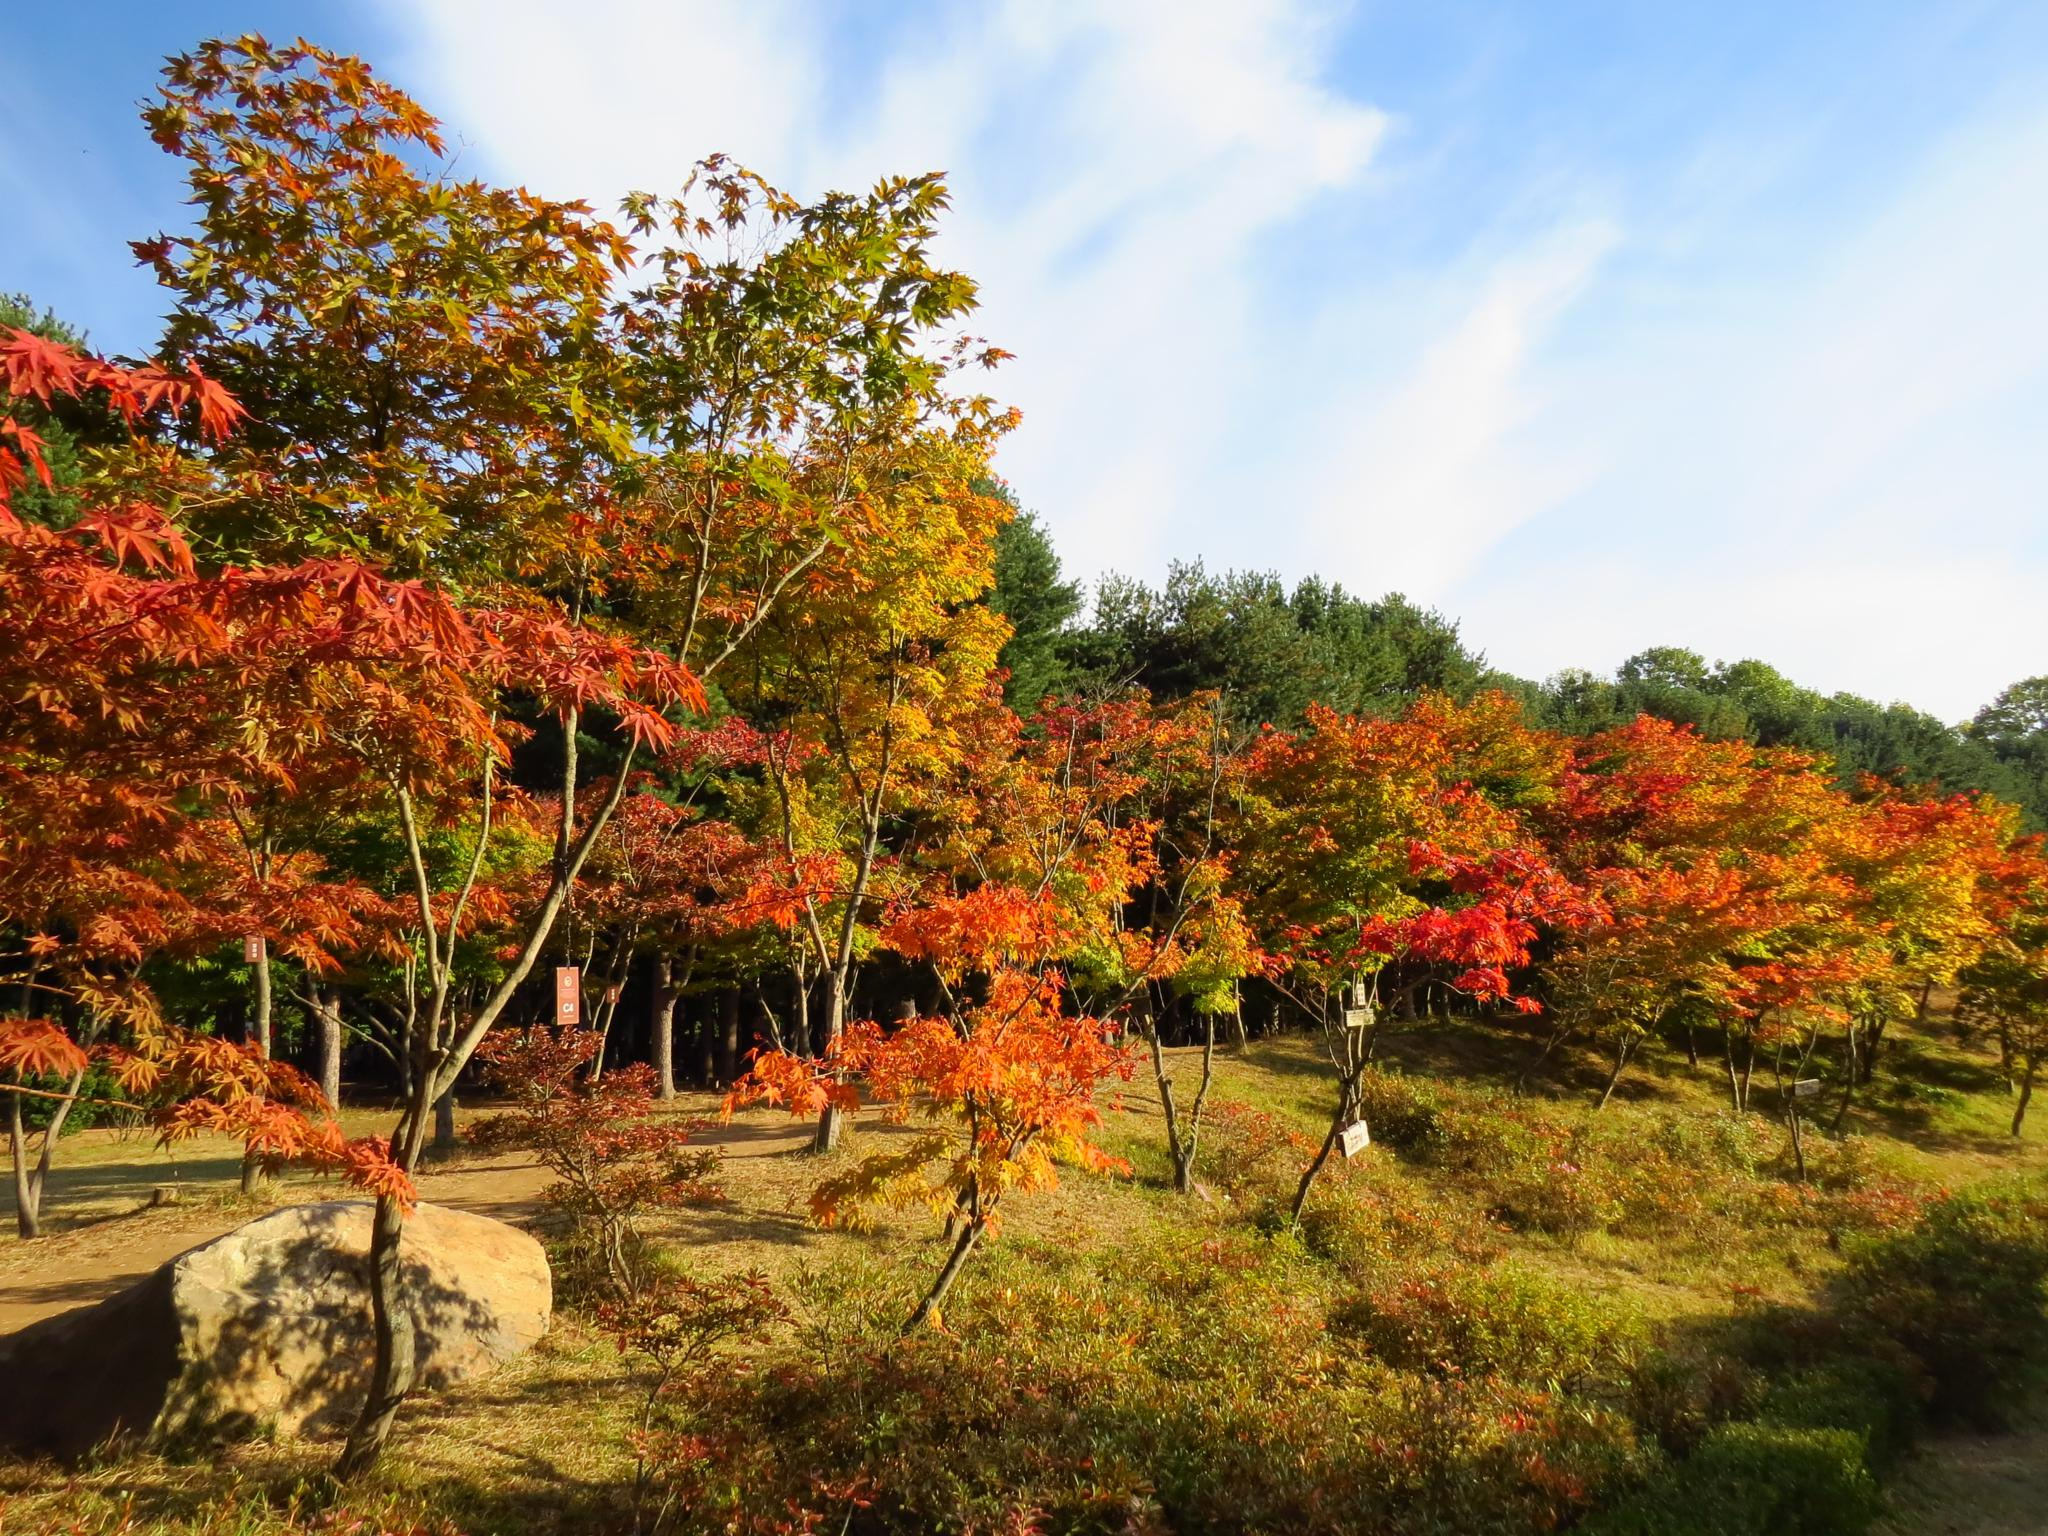 Autumn in South Korea by Takeo T.